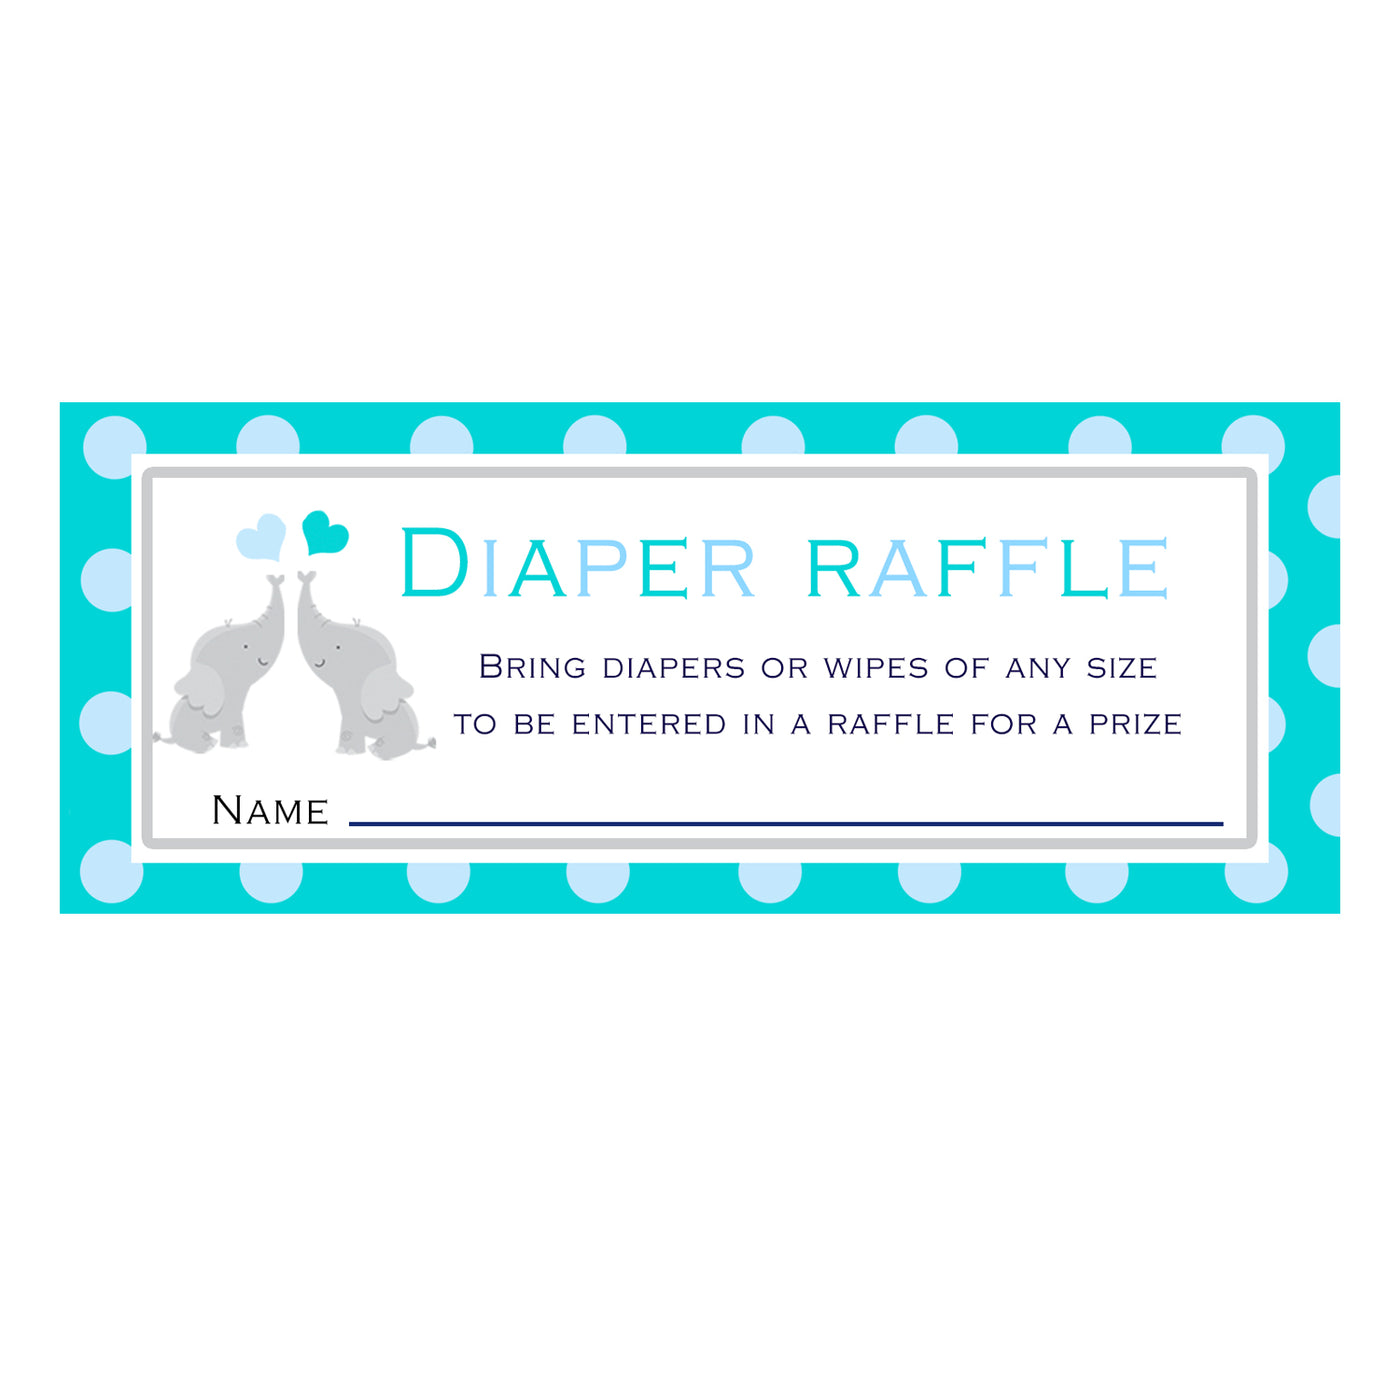 image relating to Printable Diaper called Diaper Raffle Playing cards Twins Elephant Child Shower Teal Printable